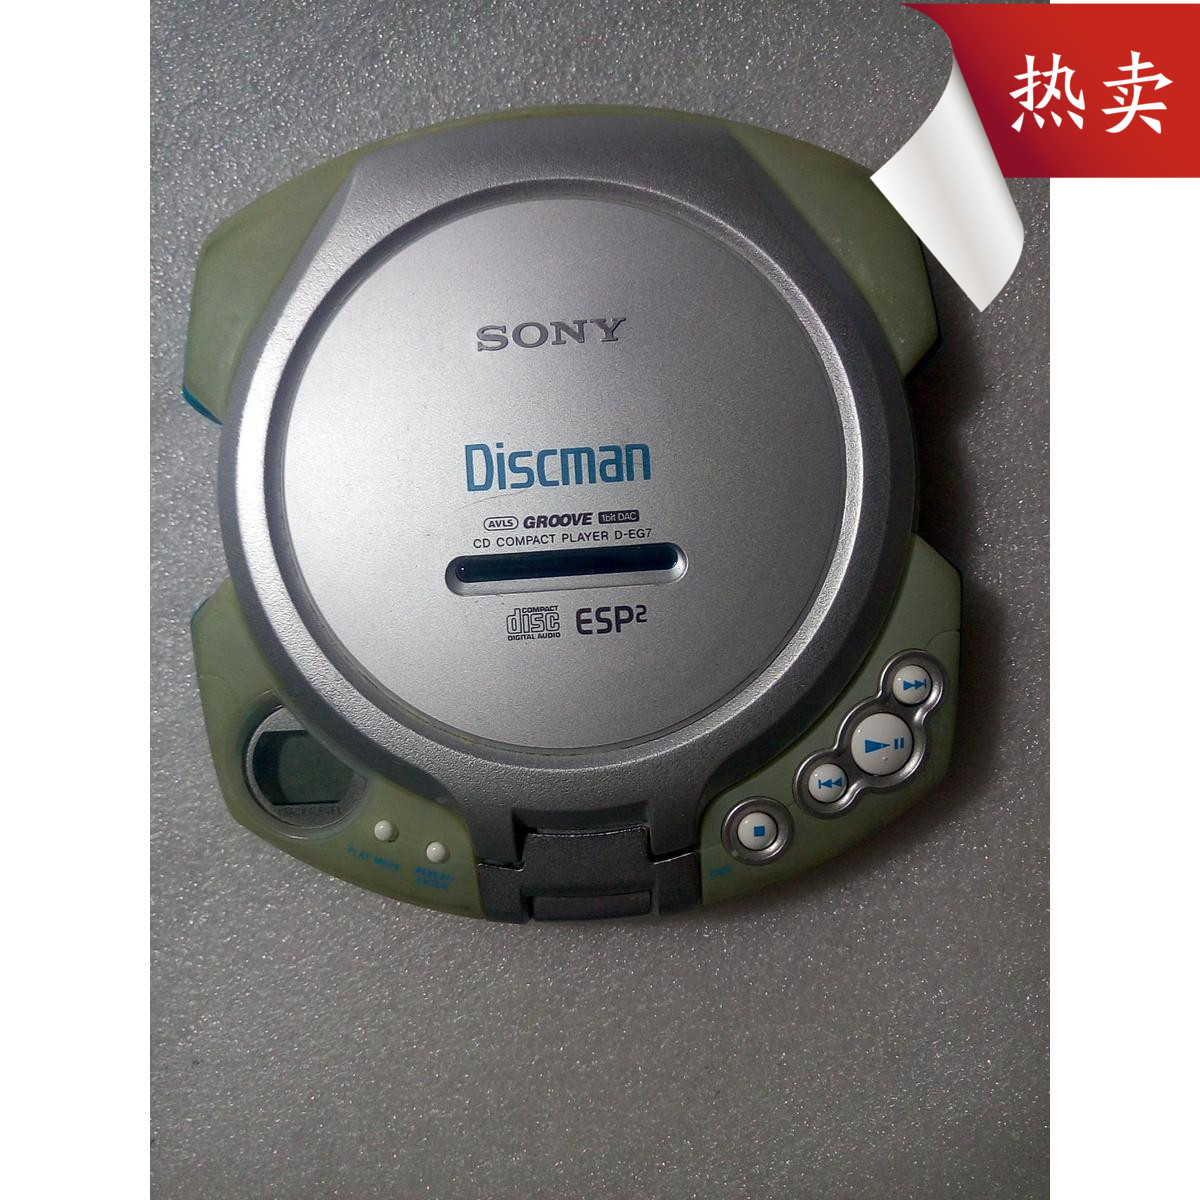 Original Sony high quality Walkman D-EG7 portable CD player subwoofer metal cover 1BIT decoding Original Sony high quality Walkman D-EG7 portable CD player subwoofer metal cover 1BIT decoding